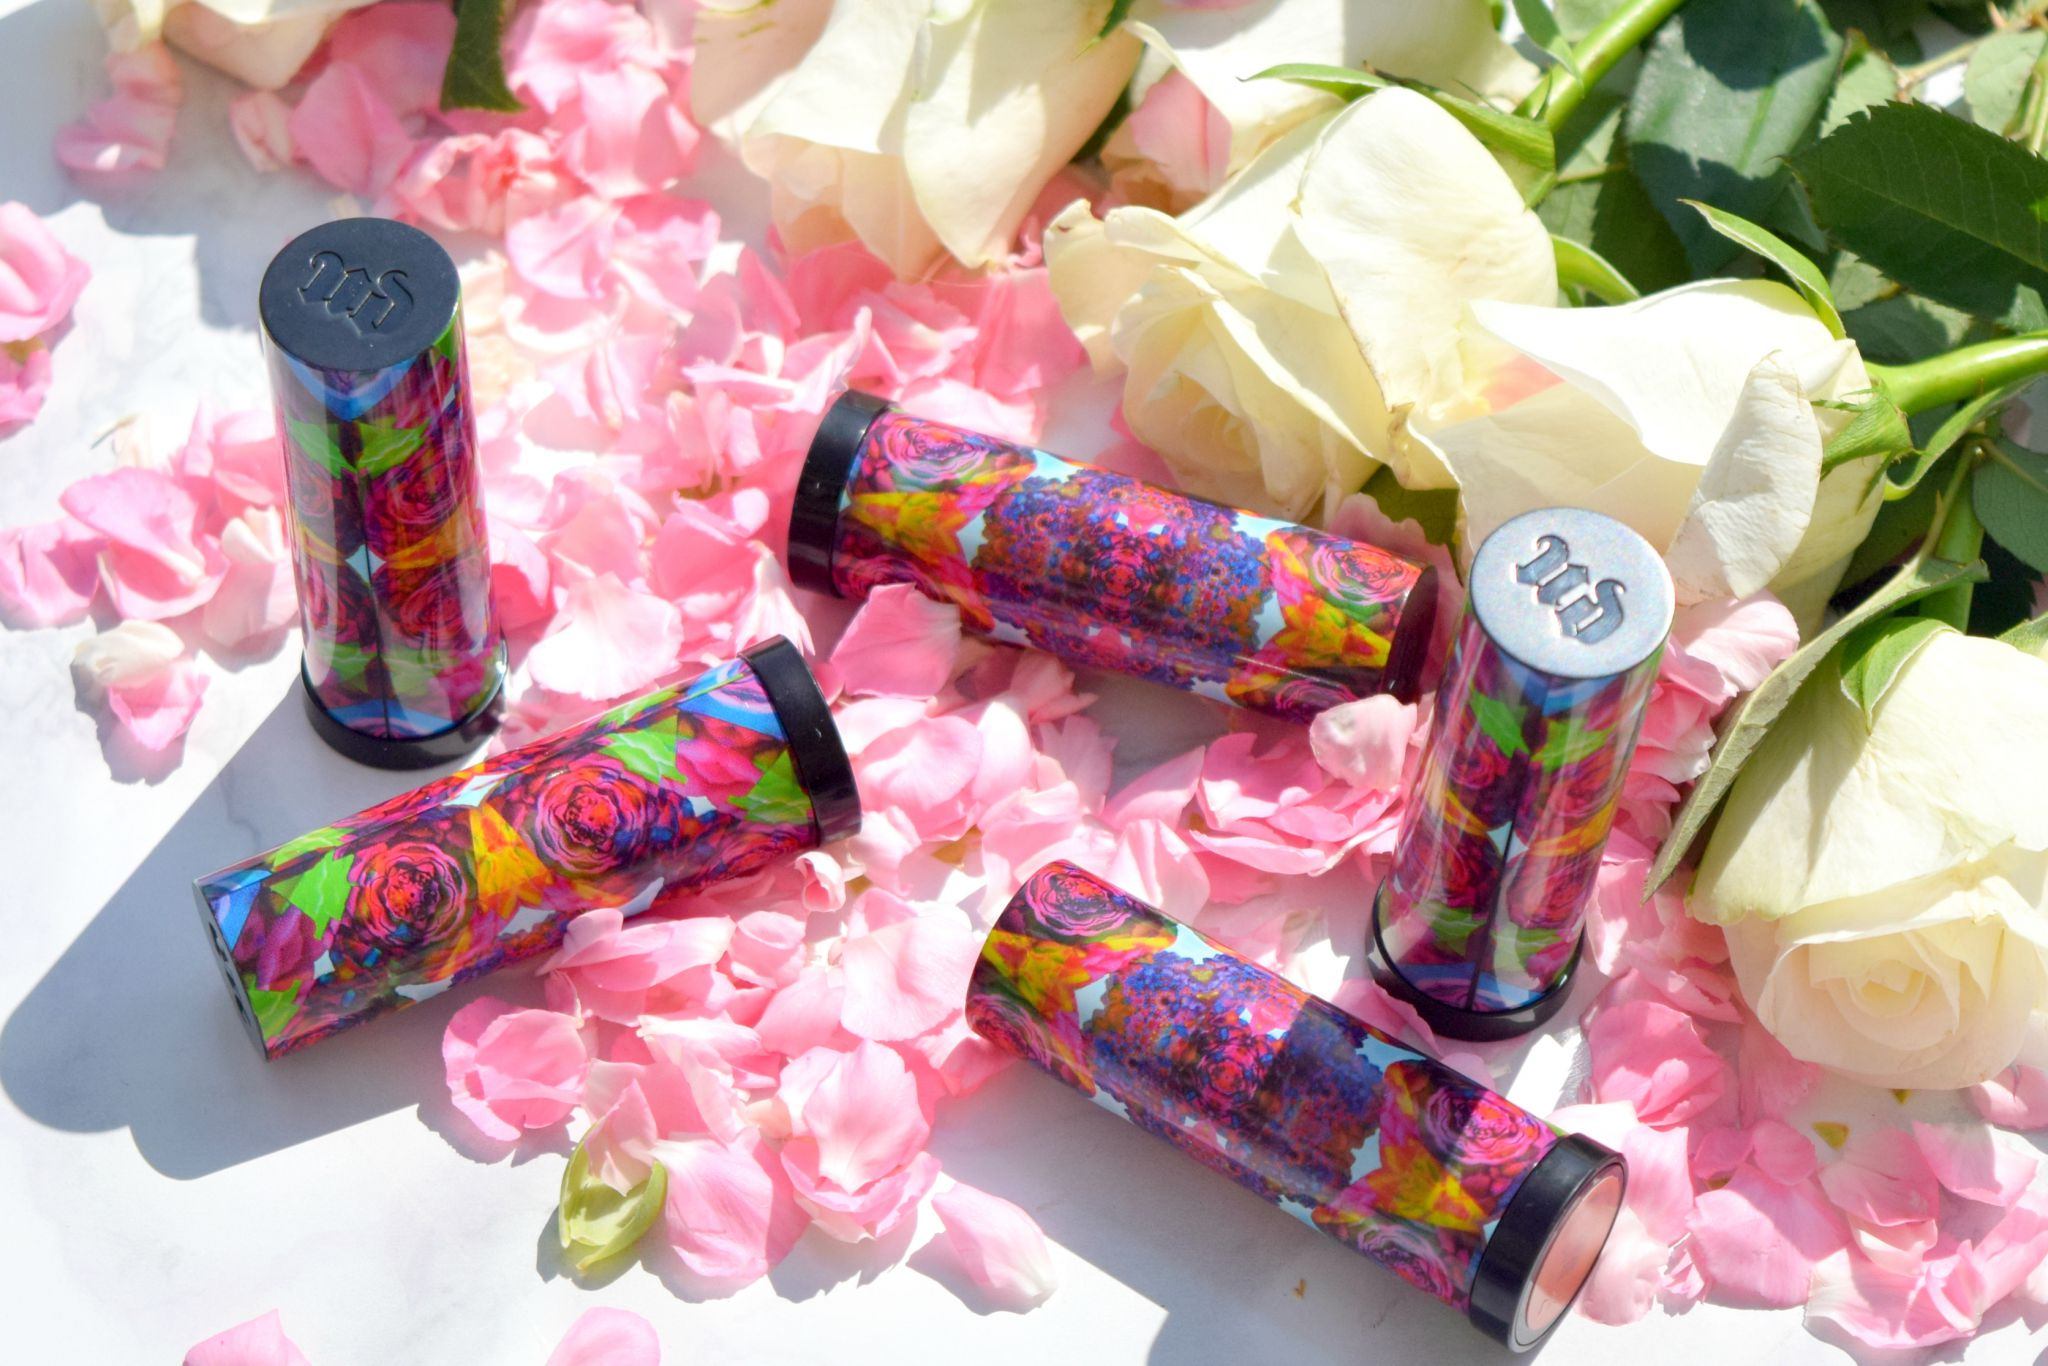 Urban Decay Alice in Wonderland Lipstick packaging